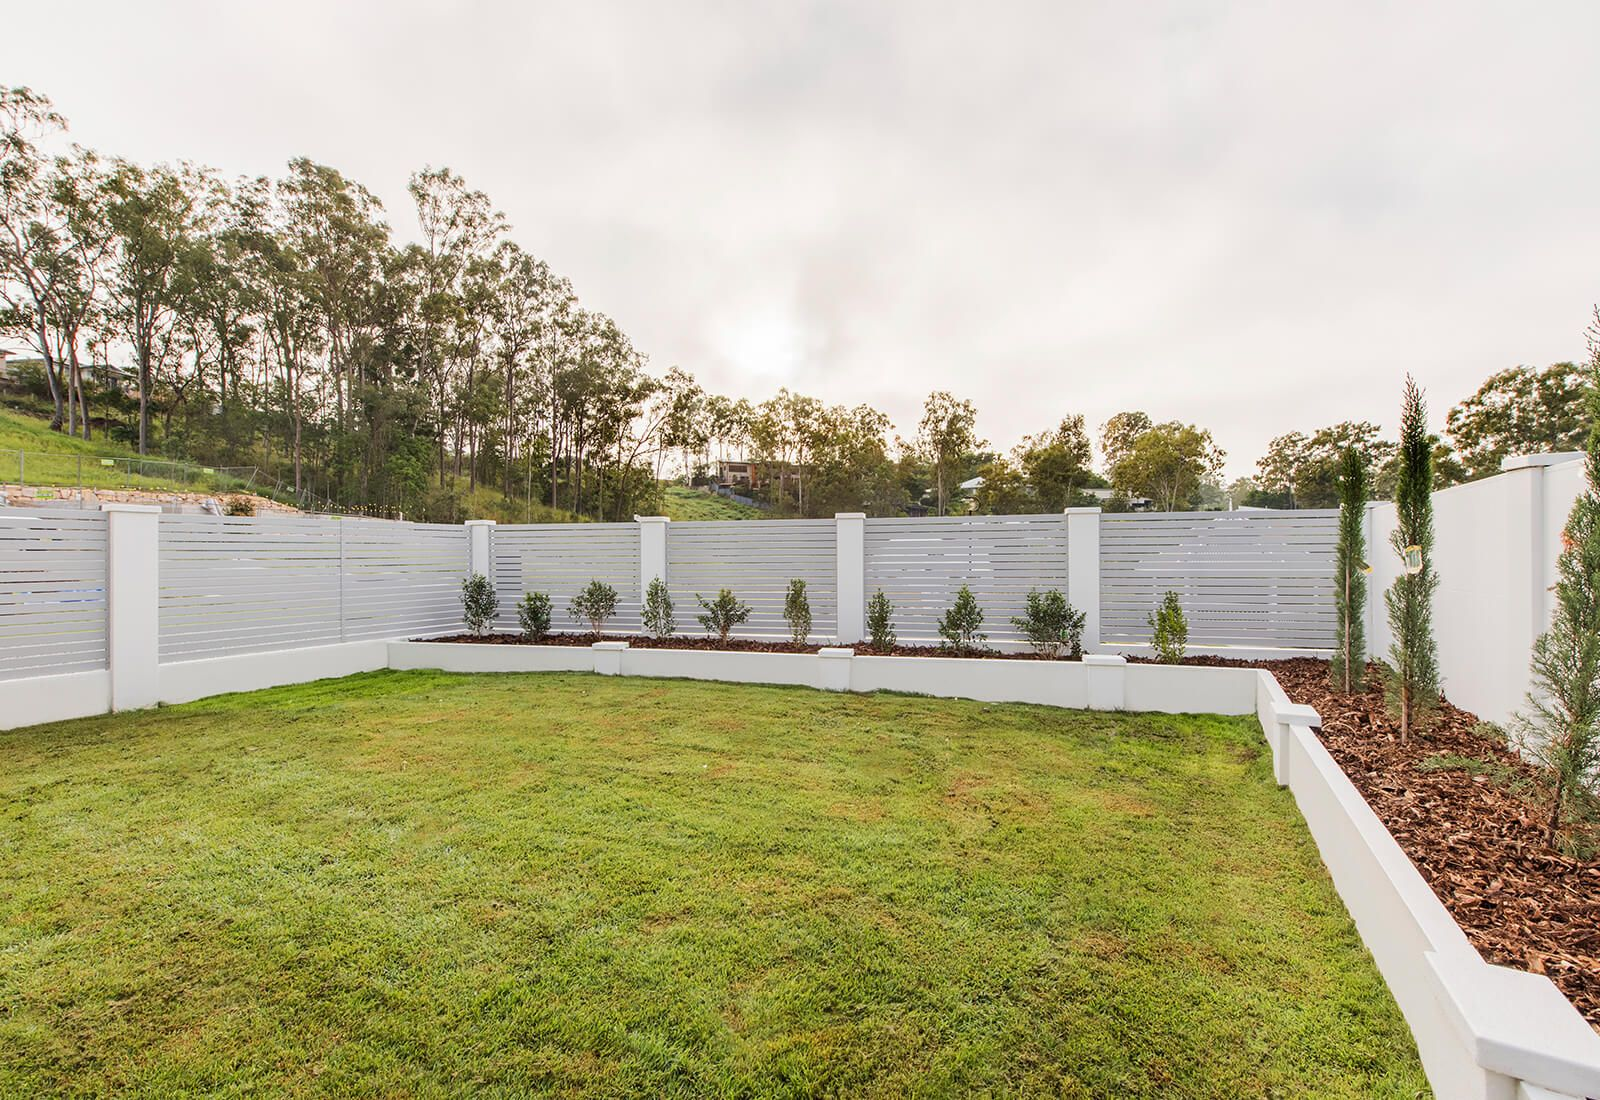 Residential Retaining Wall Solutions